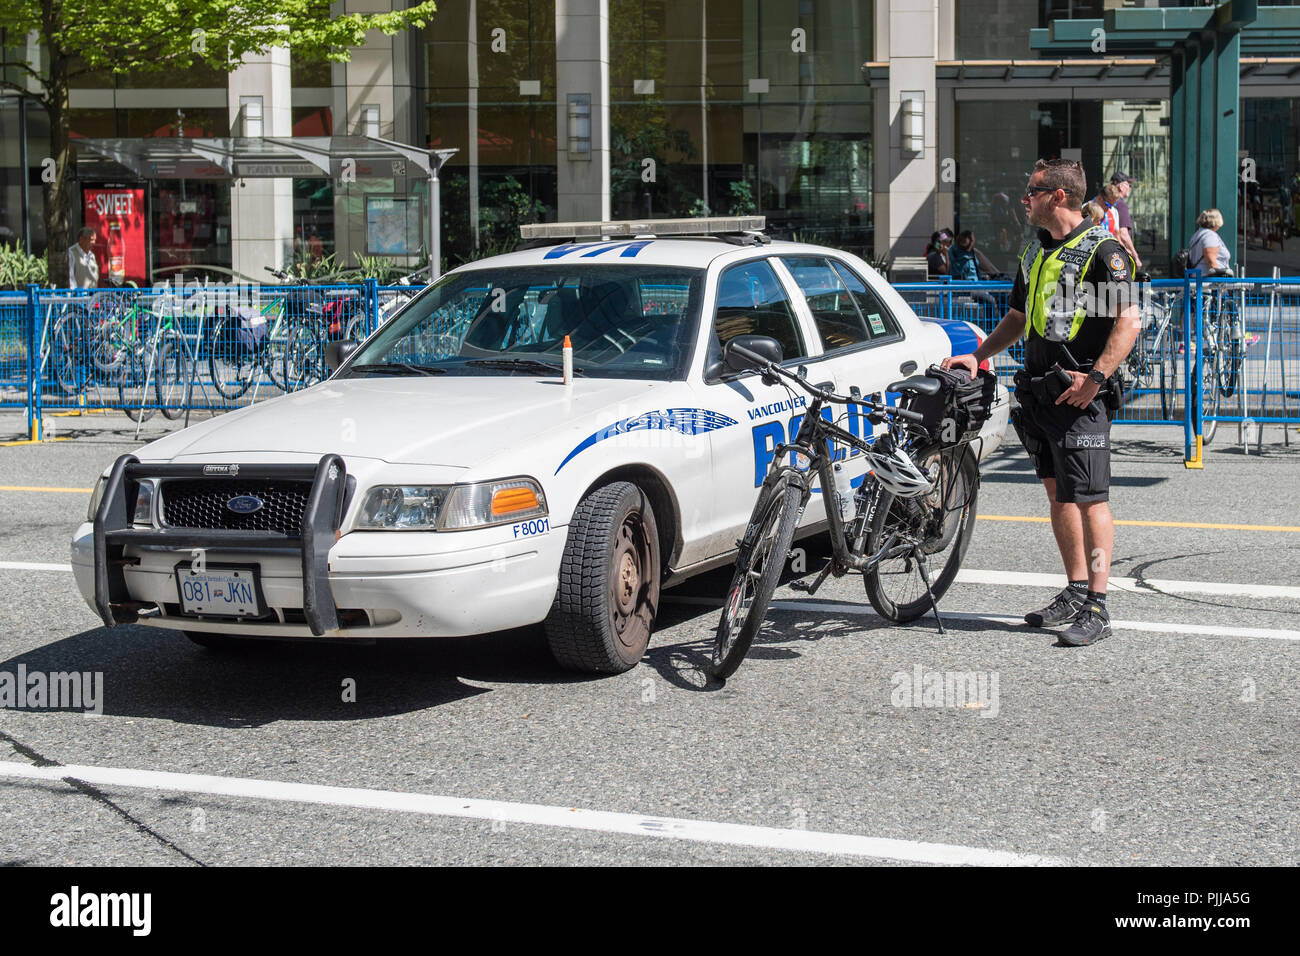 Vancouver City Policeman with bike, and vehicle blocking the street during an event, Vancouver city. - Stock Image